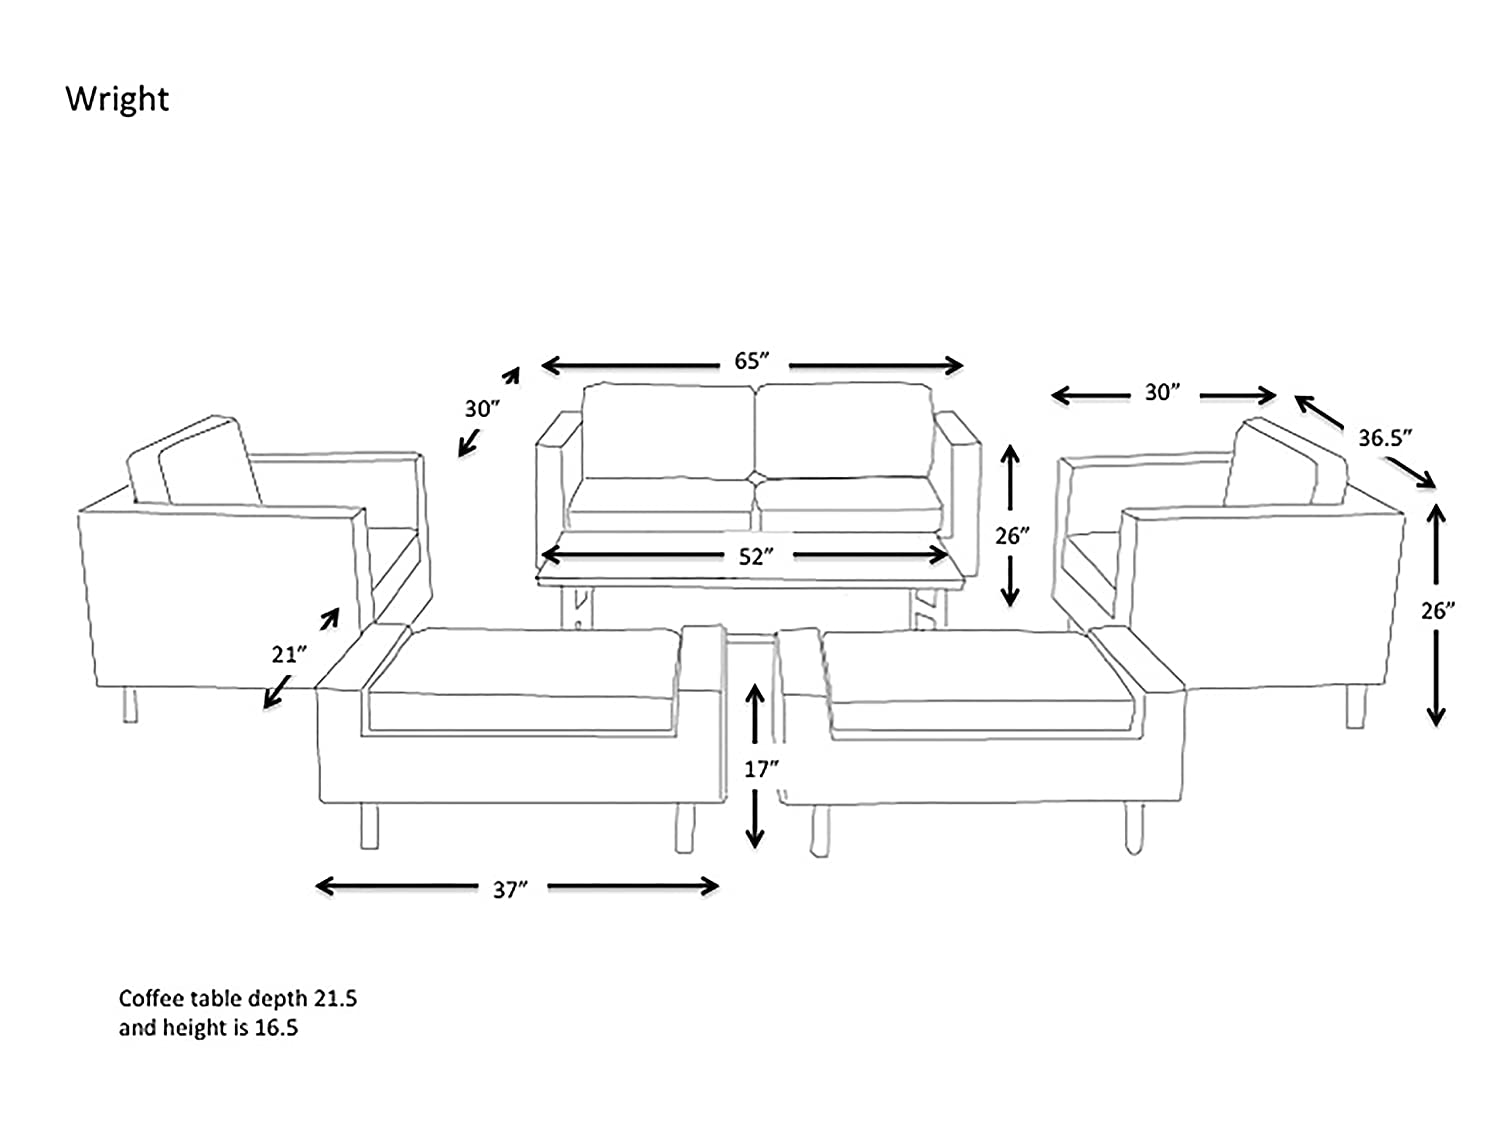 Extra $200 off coupon on AE Outdoor 6-Piece All Weather Wicker Wright Deep Seating Sofa Set